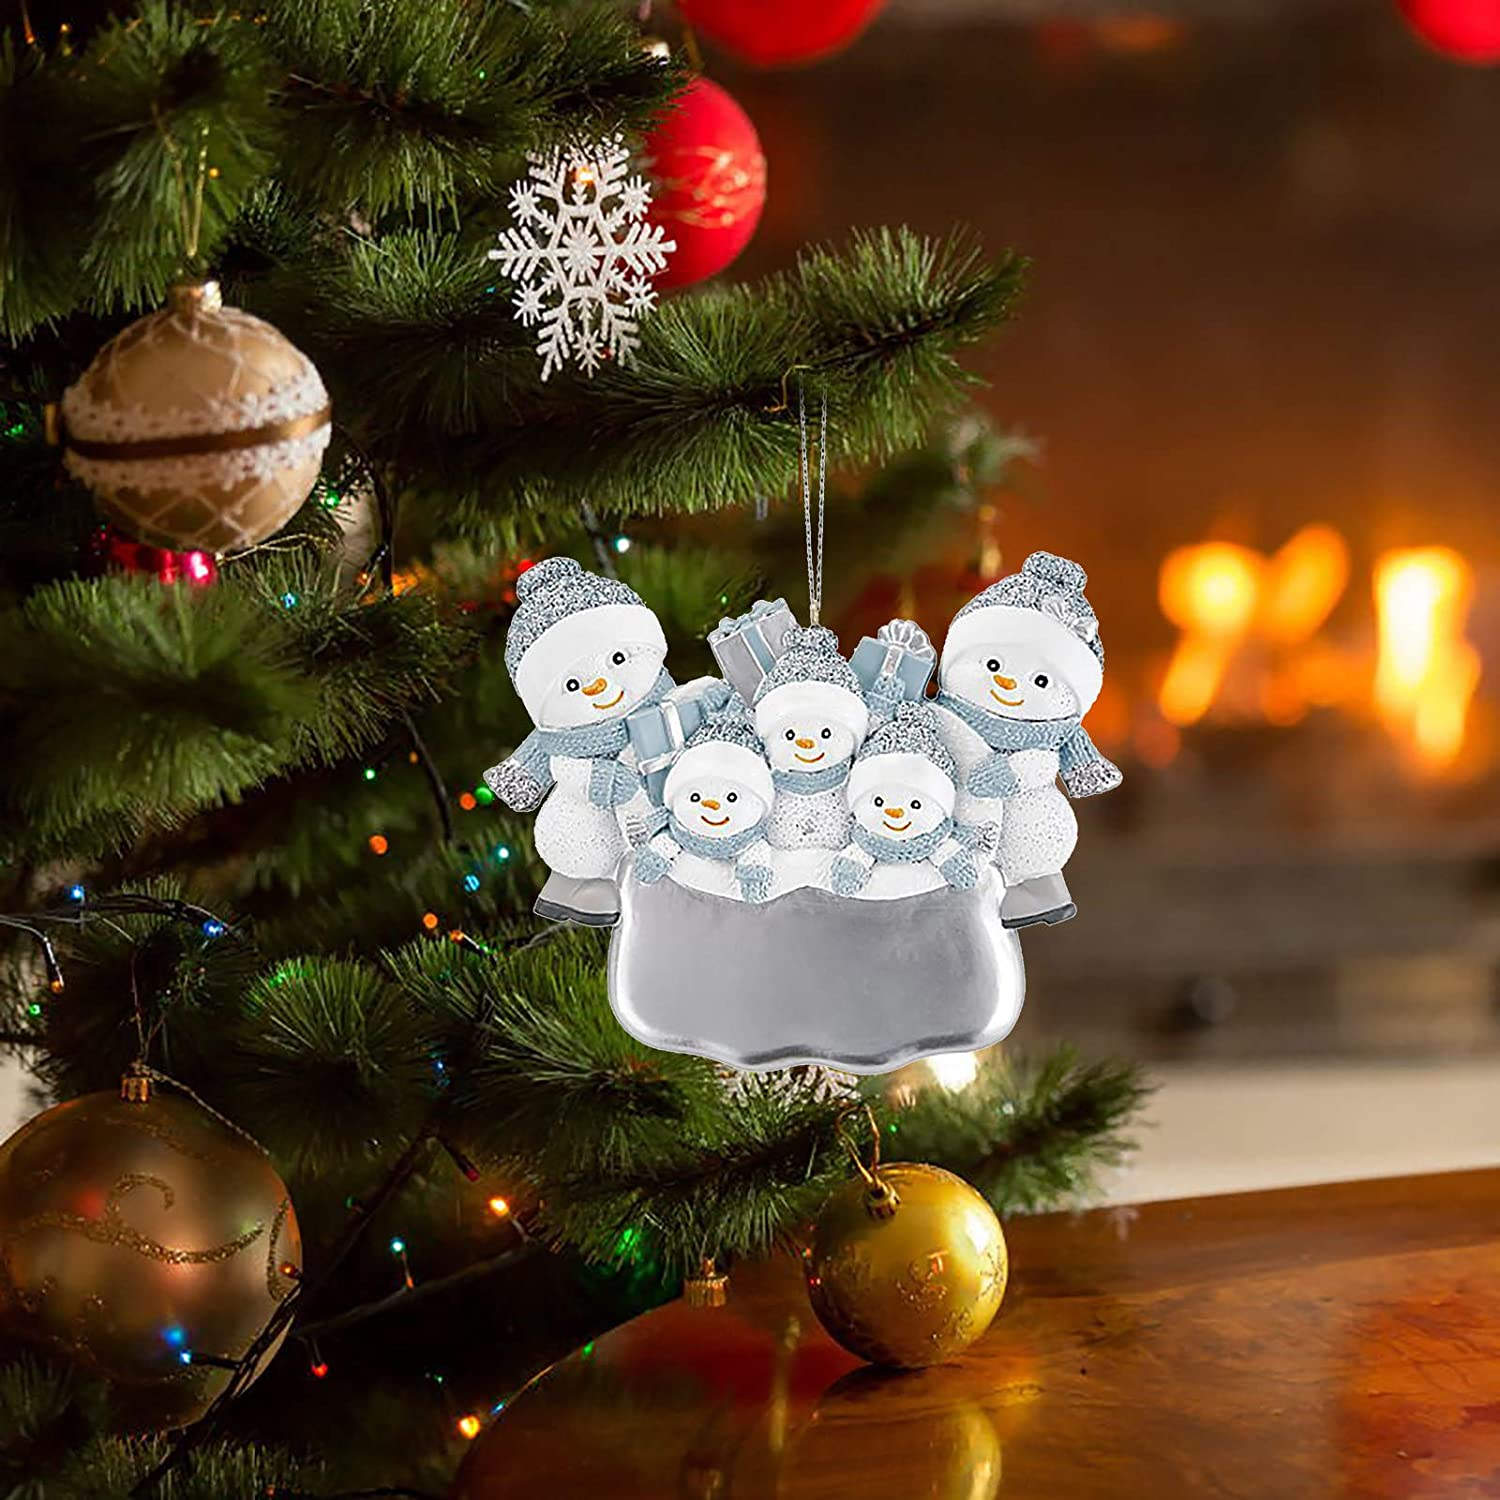 Personalized Christmas Ornament Ornaments for Christmas 2020 Family Gifts Resin Mask Snowman Christmas Tree Hanging Pendant